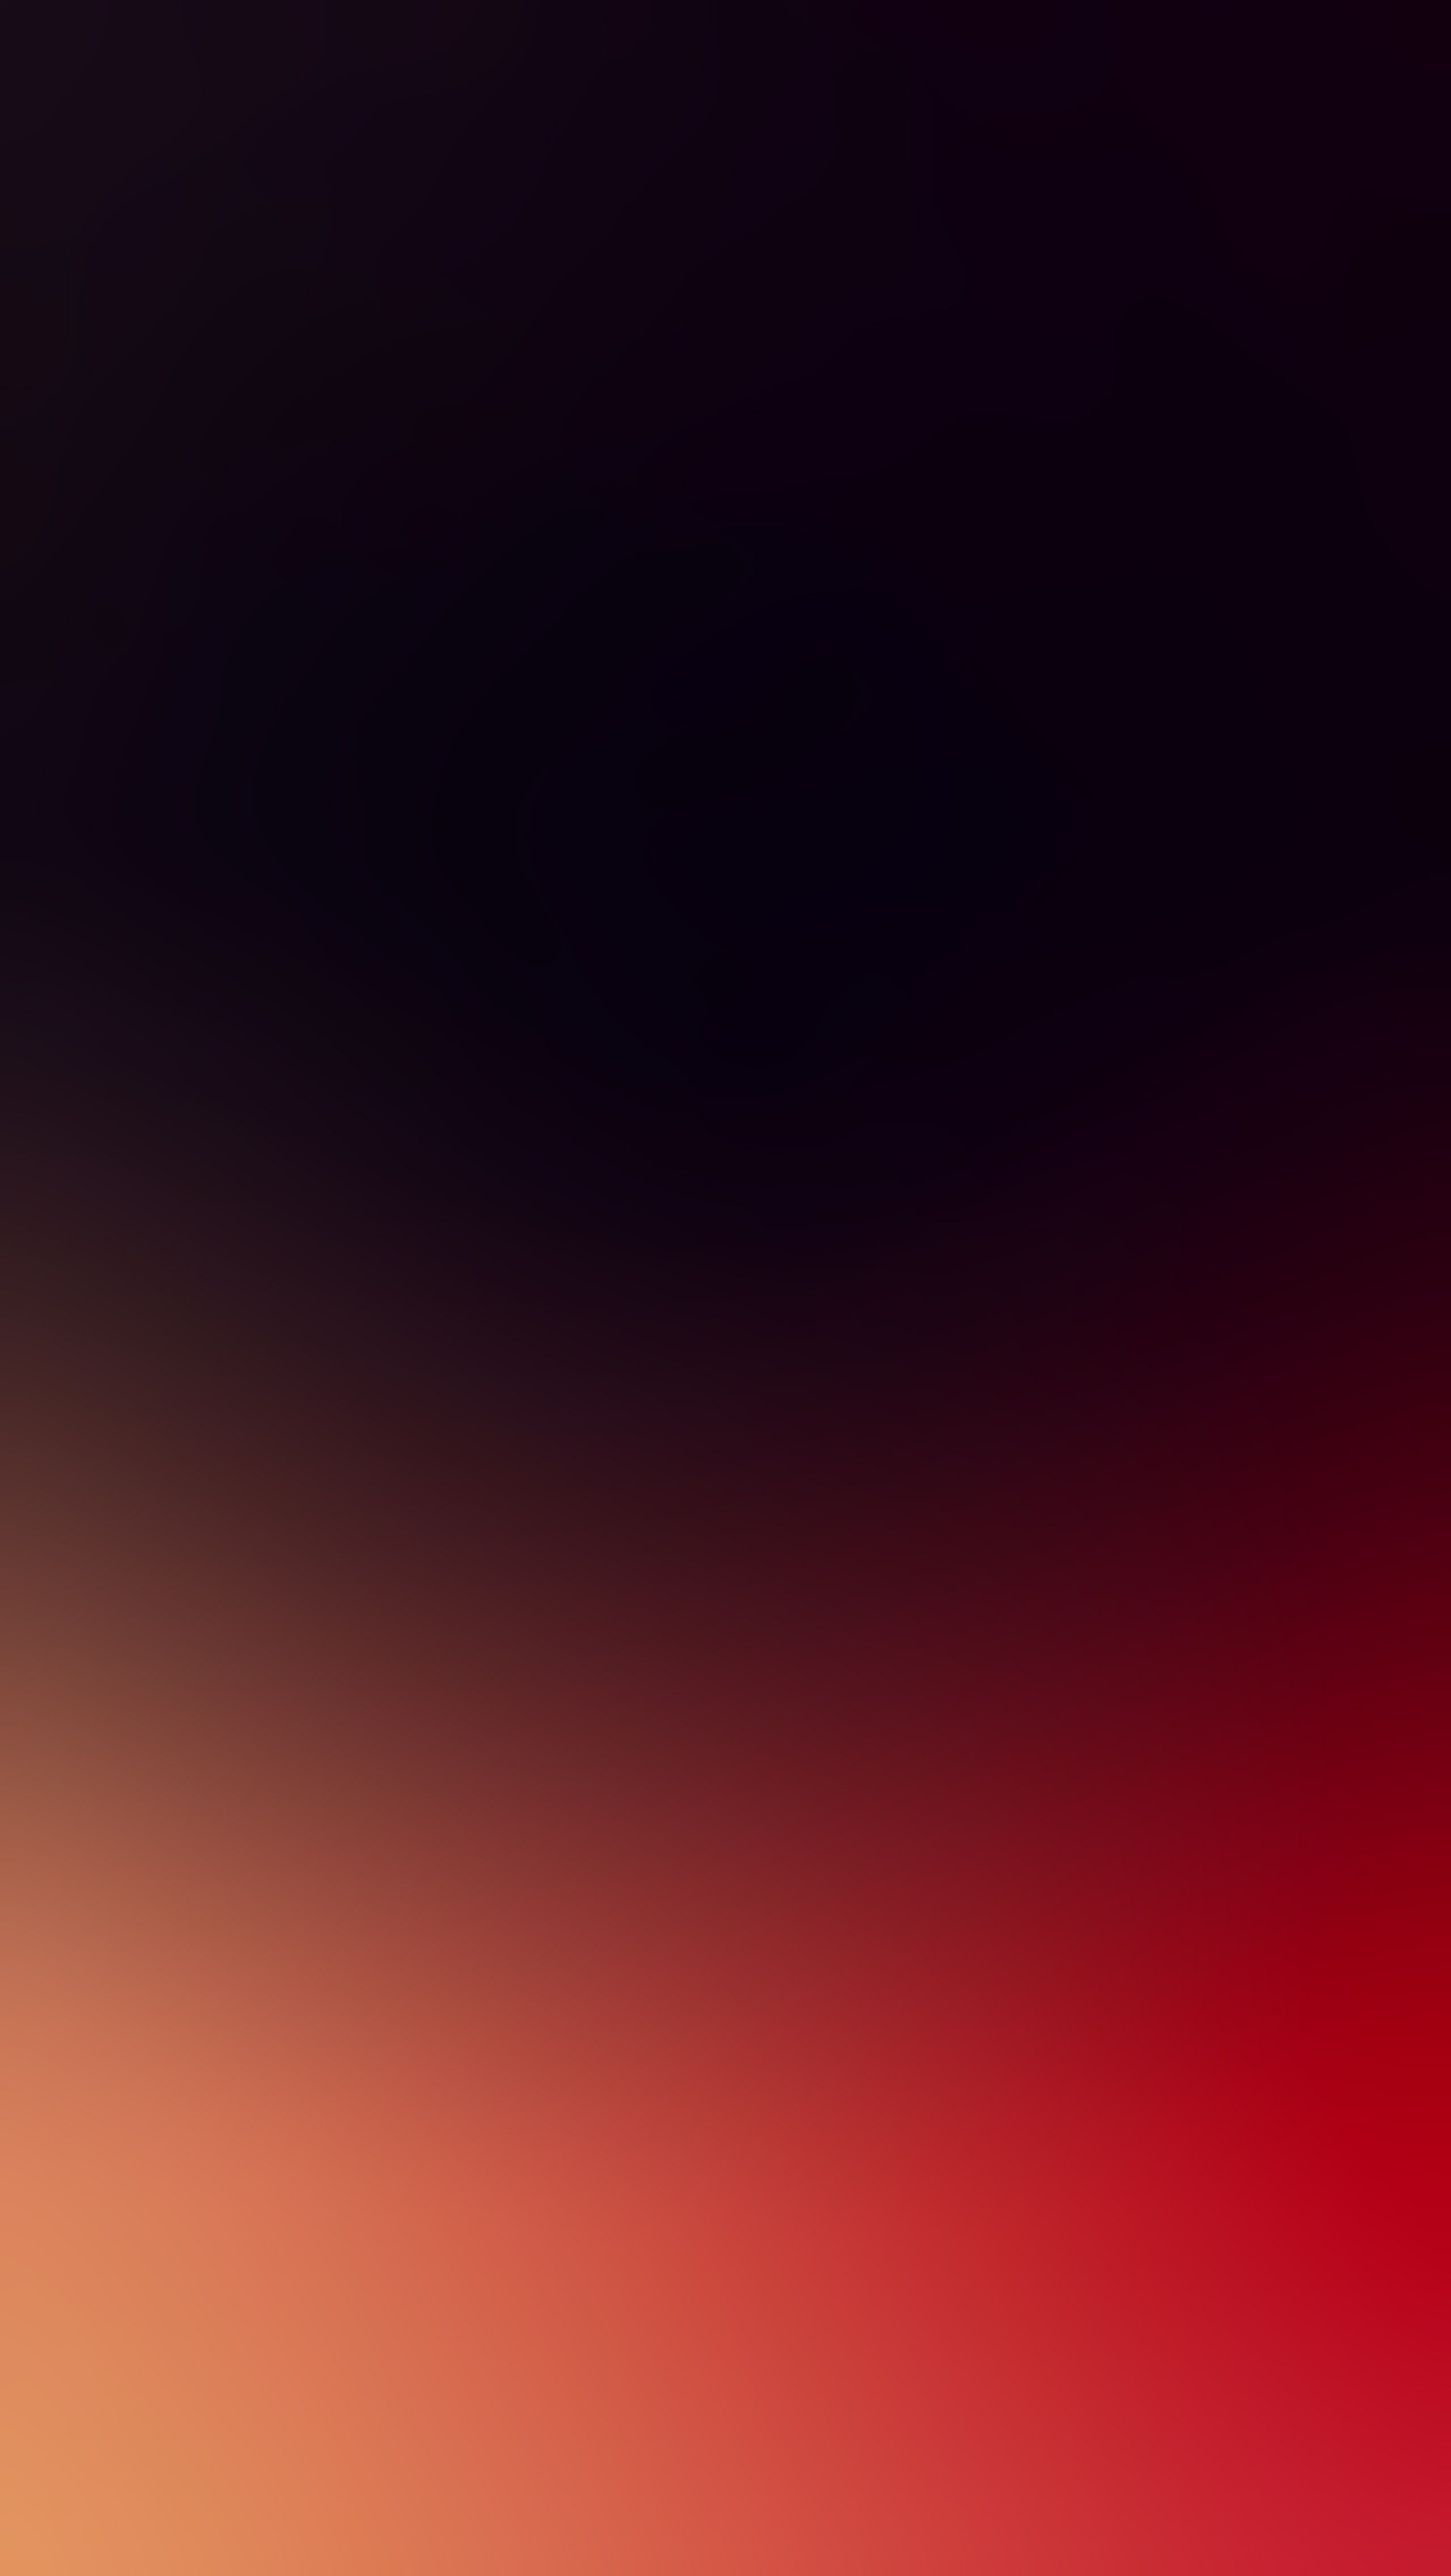 Notchless Wallpaper Iphone X Black And Red Ombre Background Hair Color Ideas And